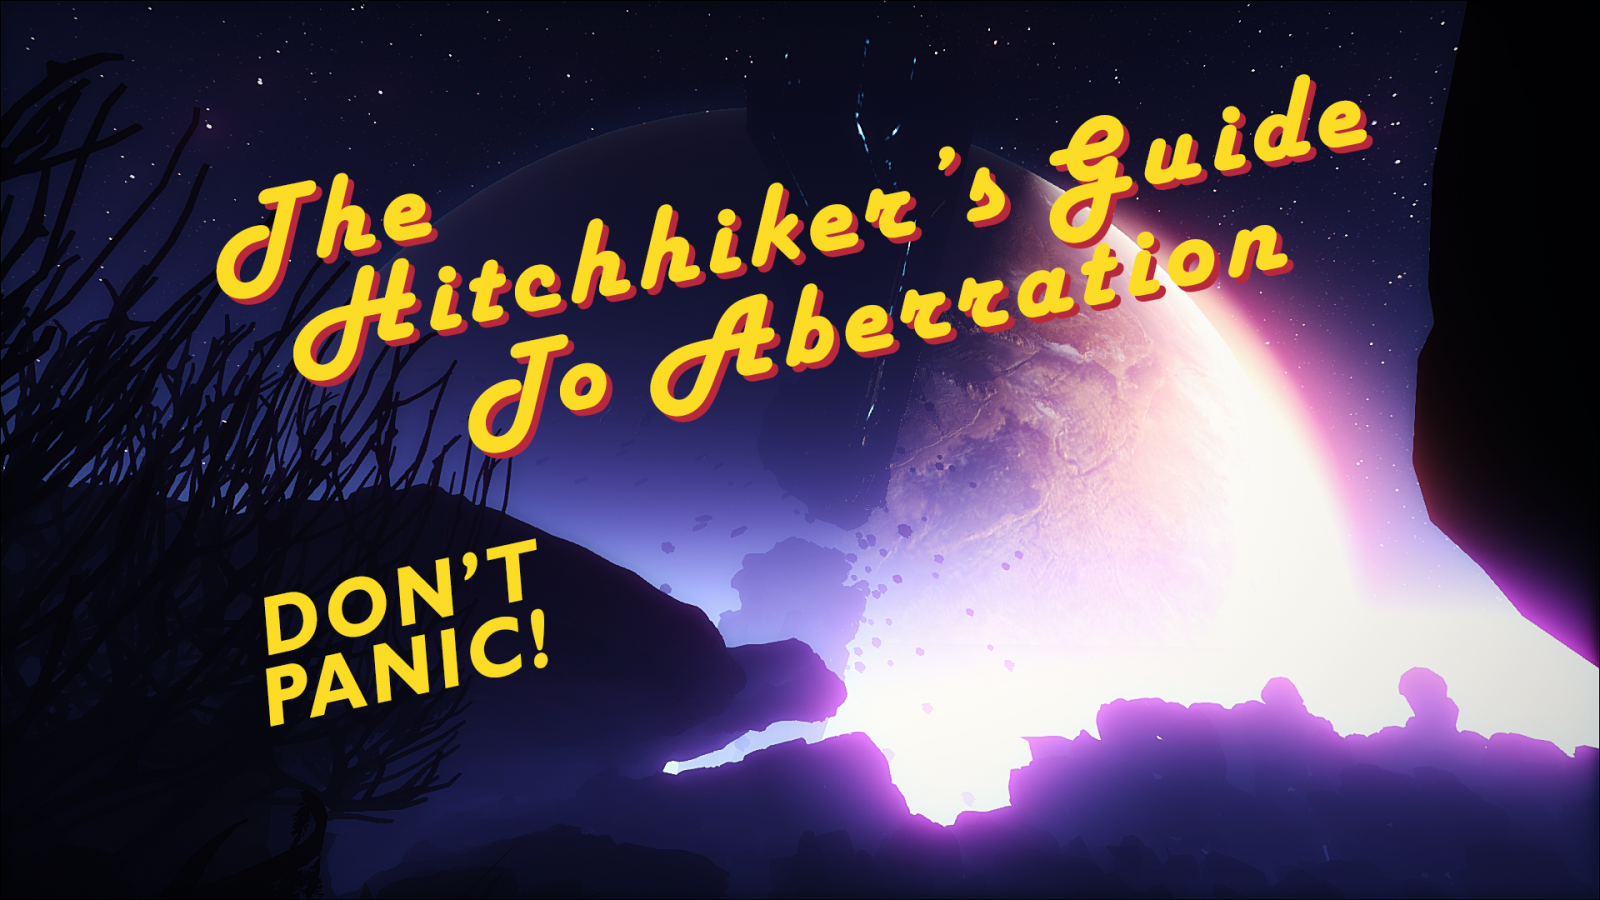 large.5a596e242b1cf_F1r3fly-TheHitchhikersGuidetoAberration-Freeform.png